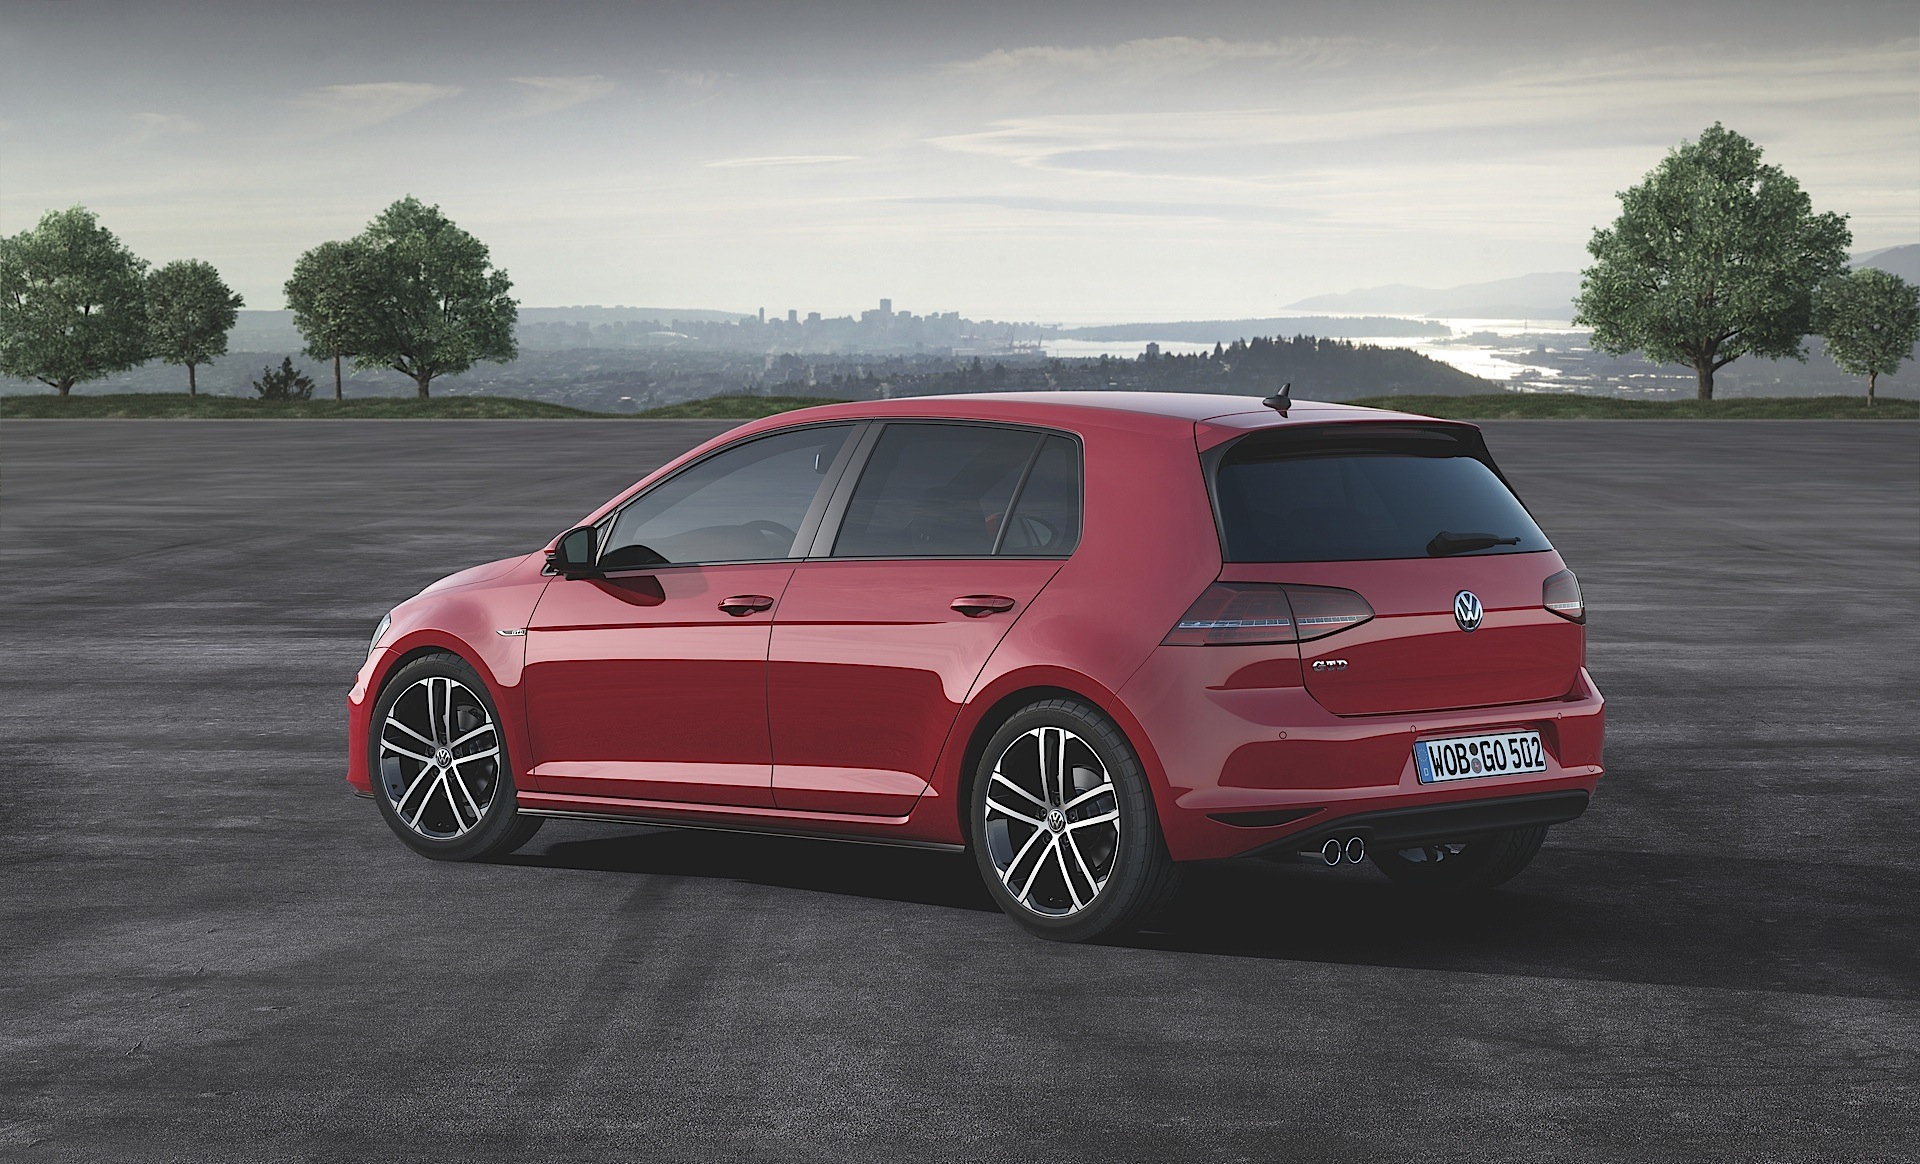 volkswagen golf gtd 5 doors specs photos 2013 2014 2015 2016 2017 autoevolution. Black Bedroom Furniture Sets. Home Design Ideas